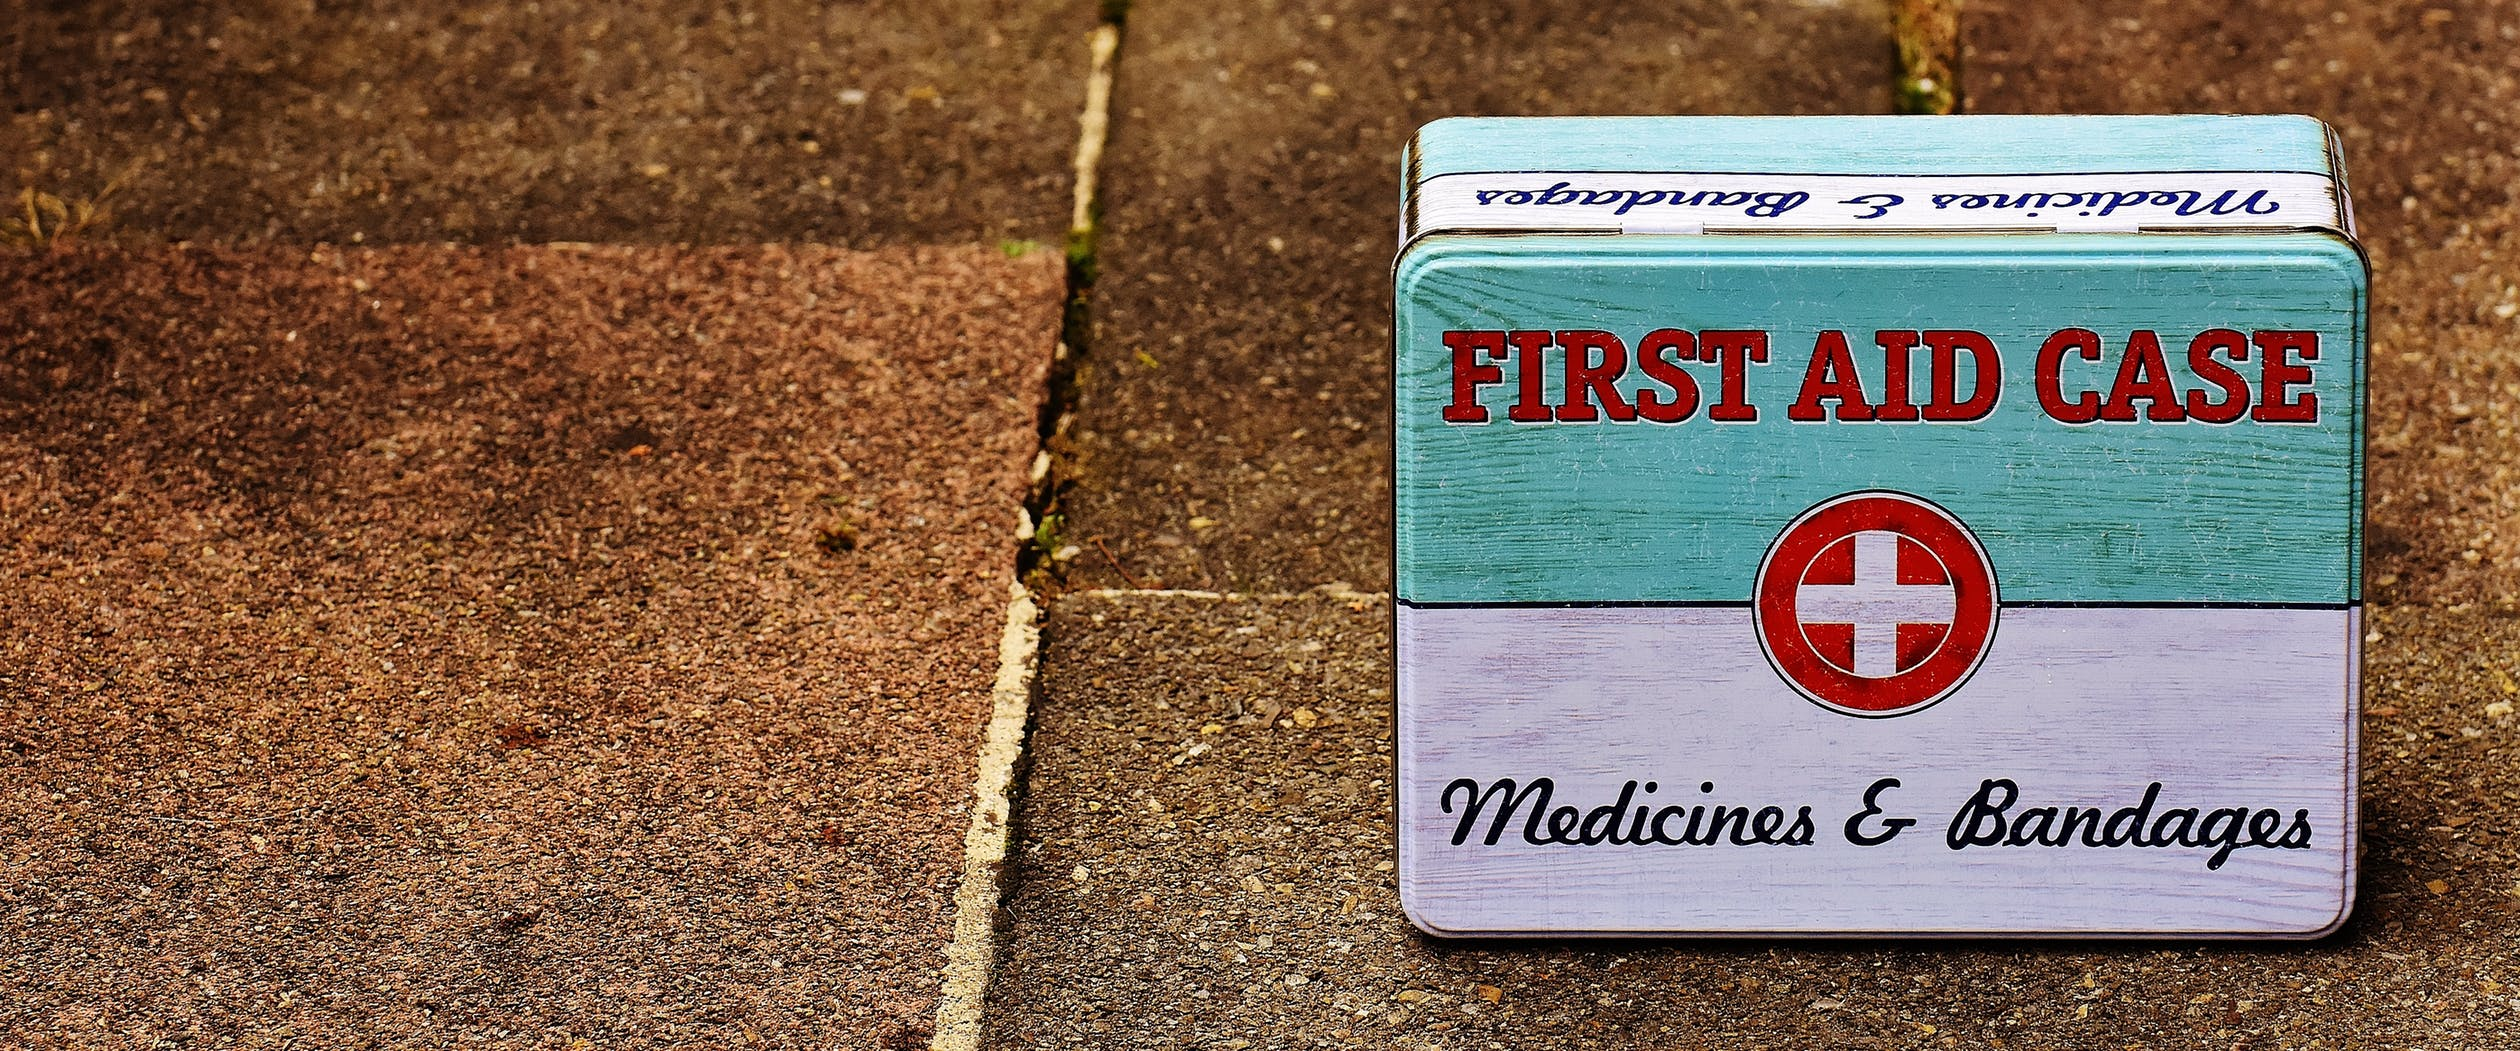 How Do You Maintain a First Aid Kit?